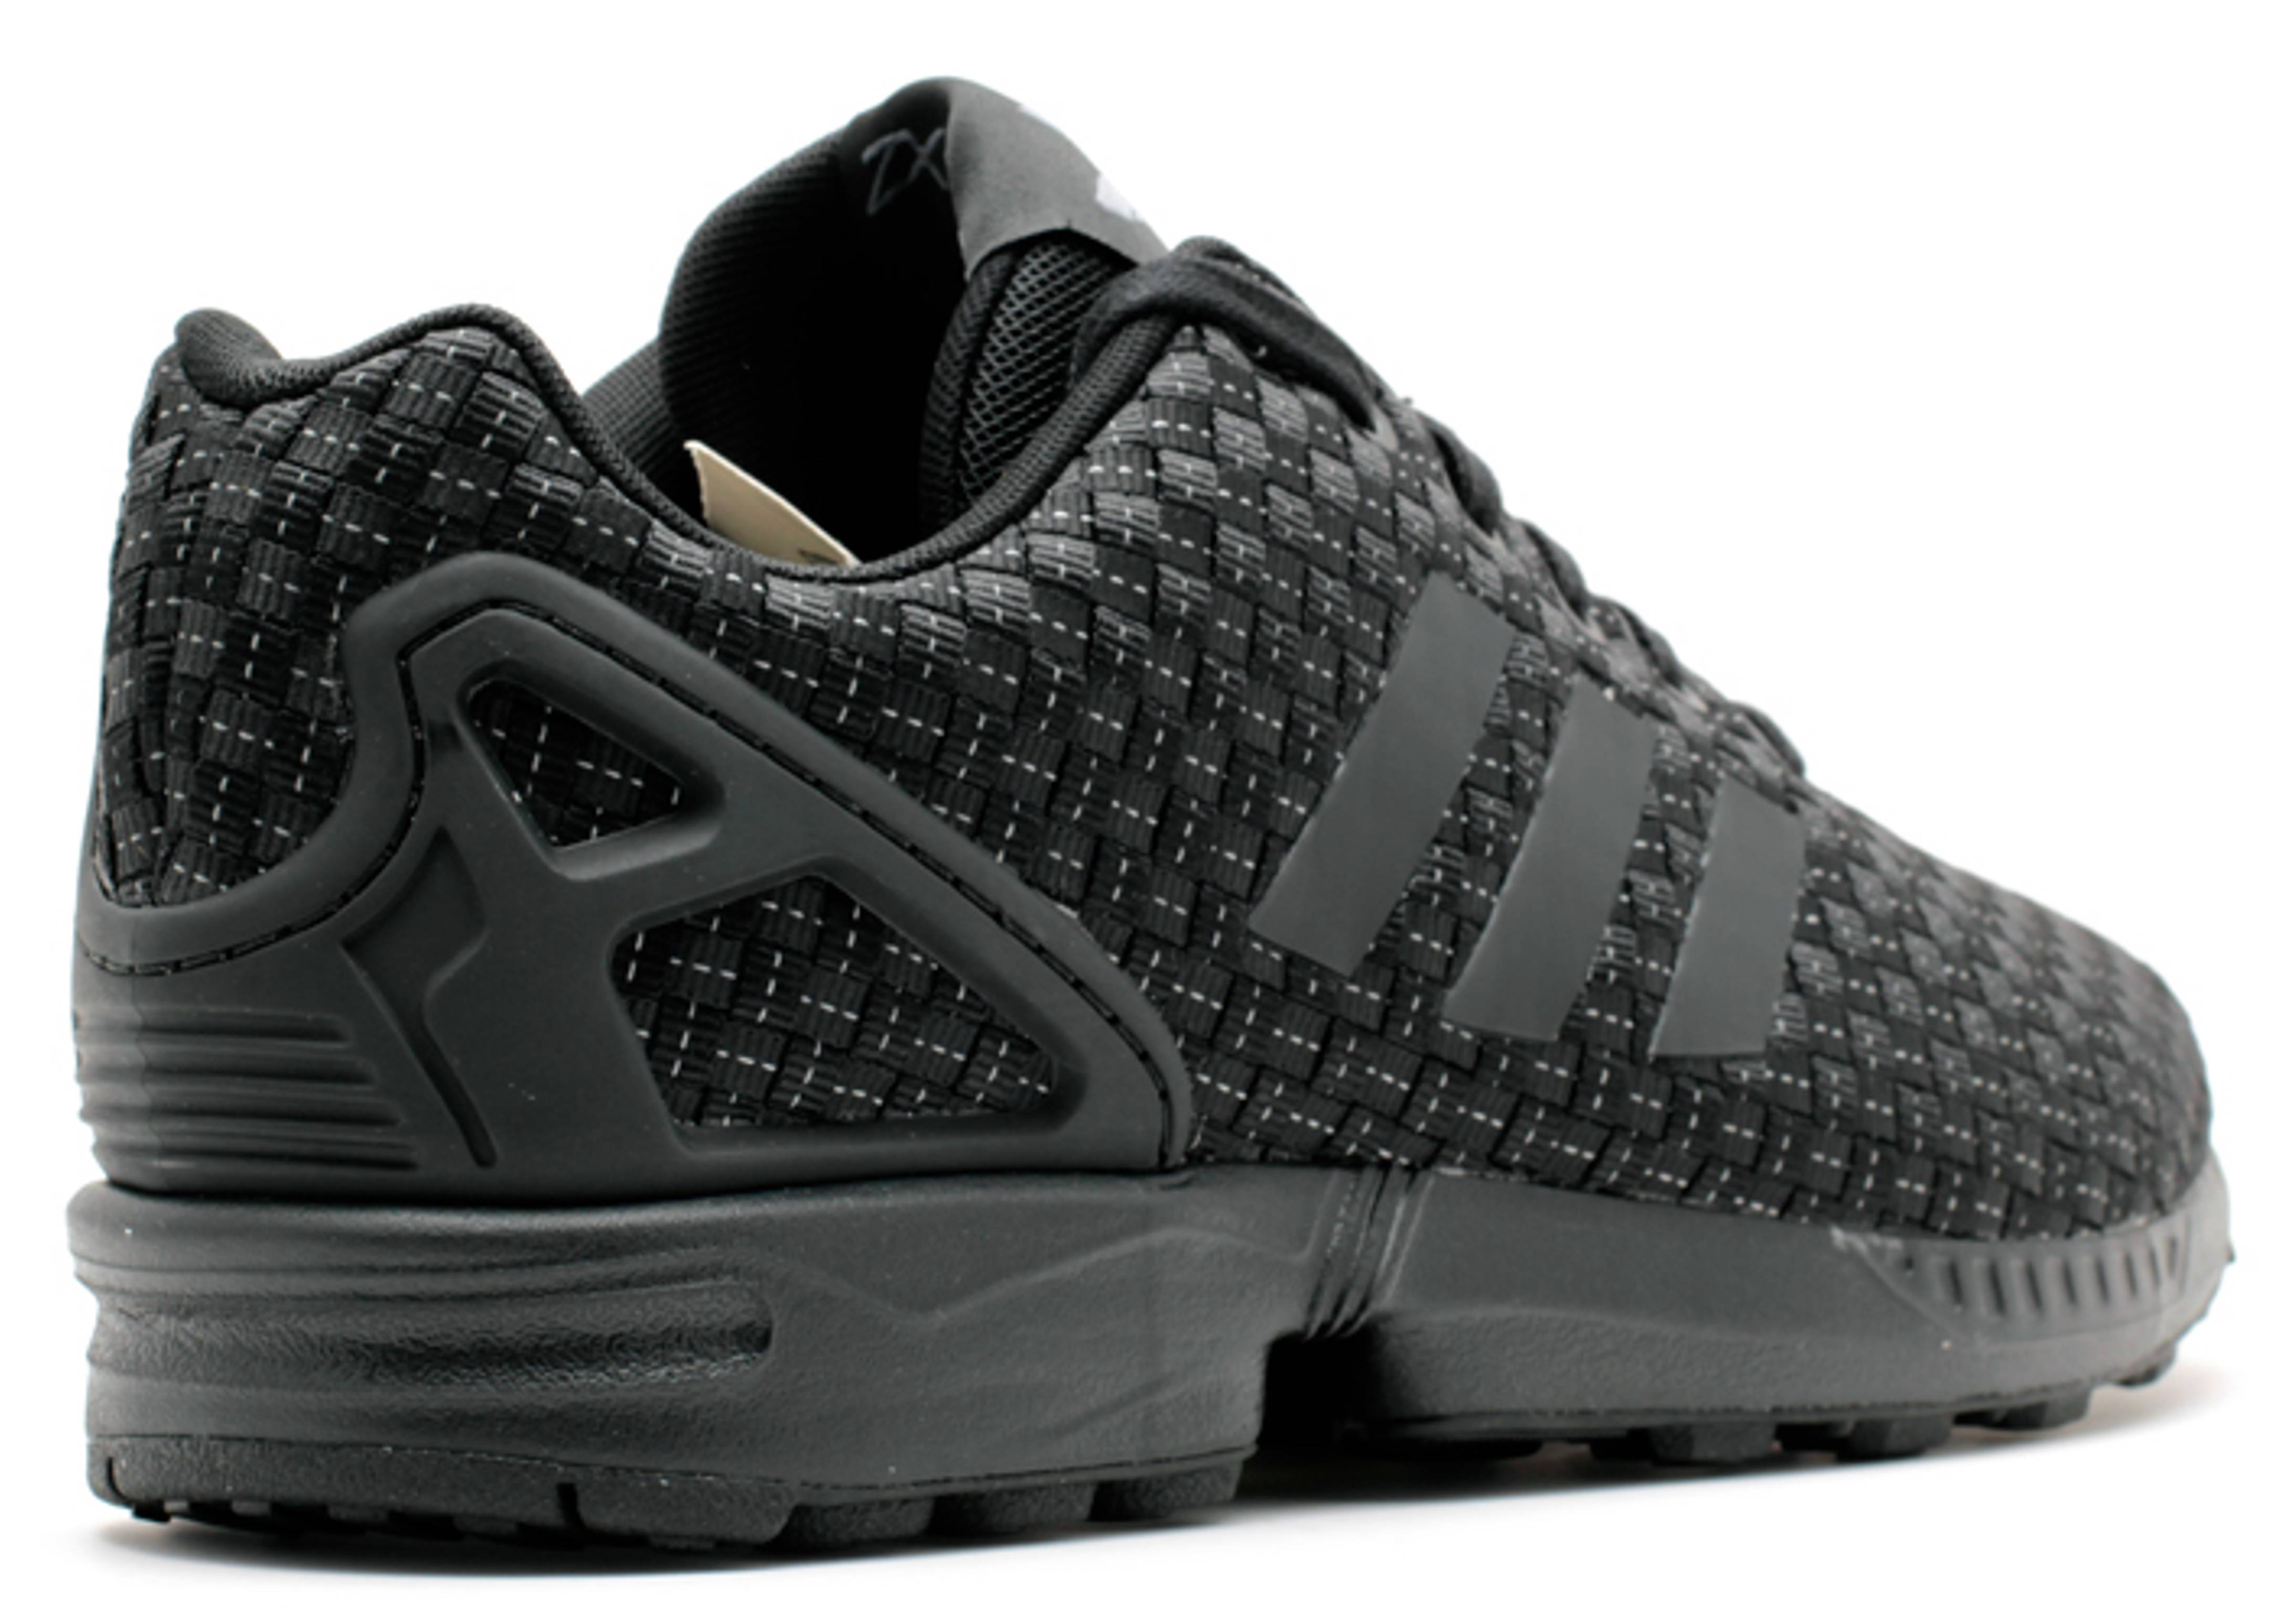 new style 91500 e7993 Zx Flux